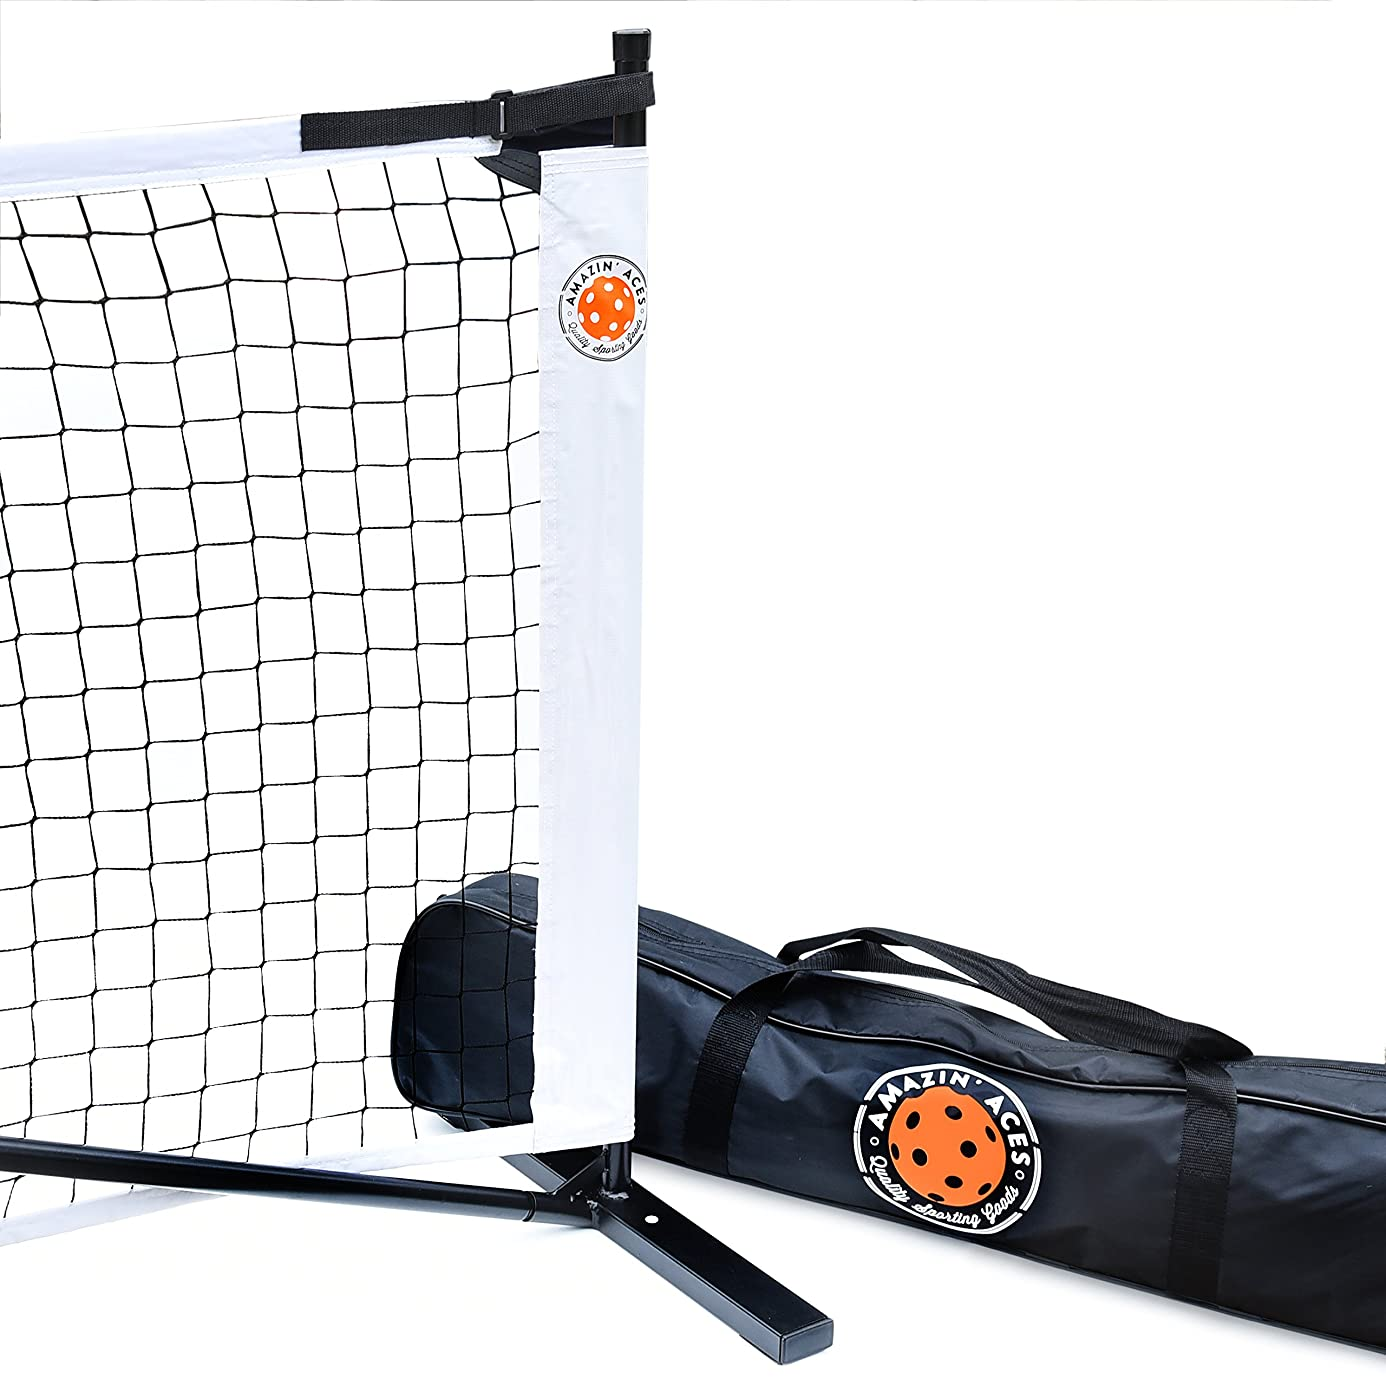 Amazin' Aces Portable Pickleball Net | Premium Net Set Includes Easy-Snap Metal Frame, Tension Strap Net, Carry Bag for Easy Carry | Regulation Size Pickle Ball Net